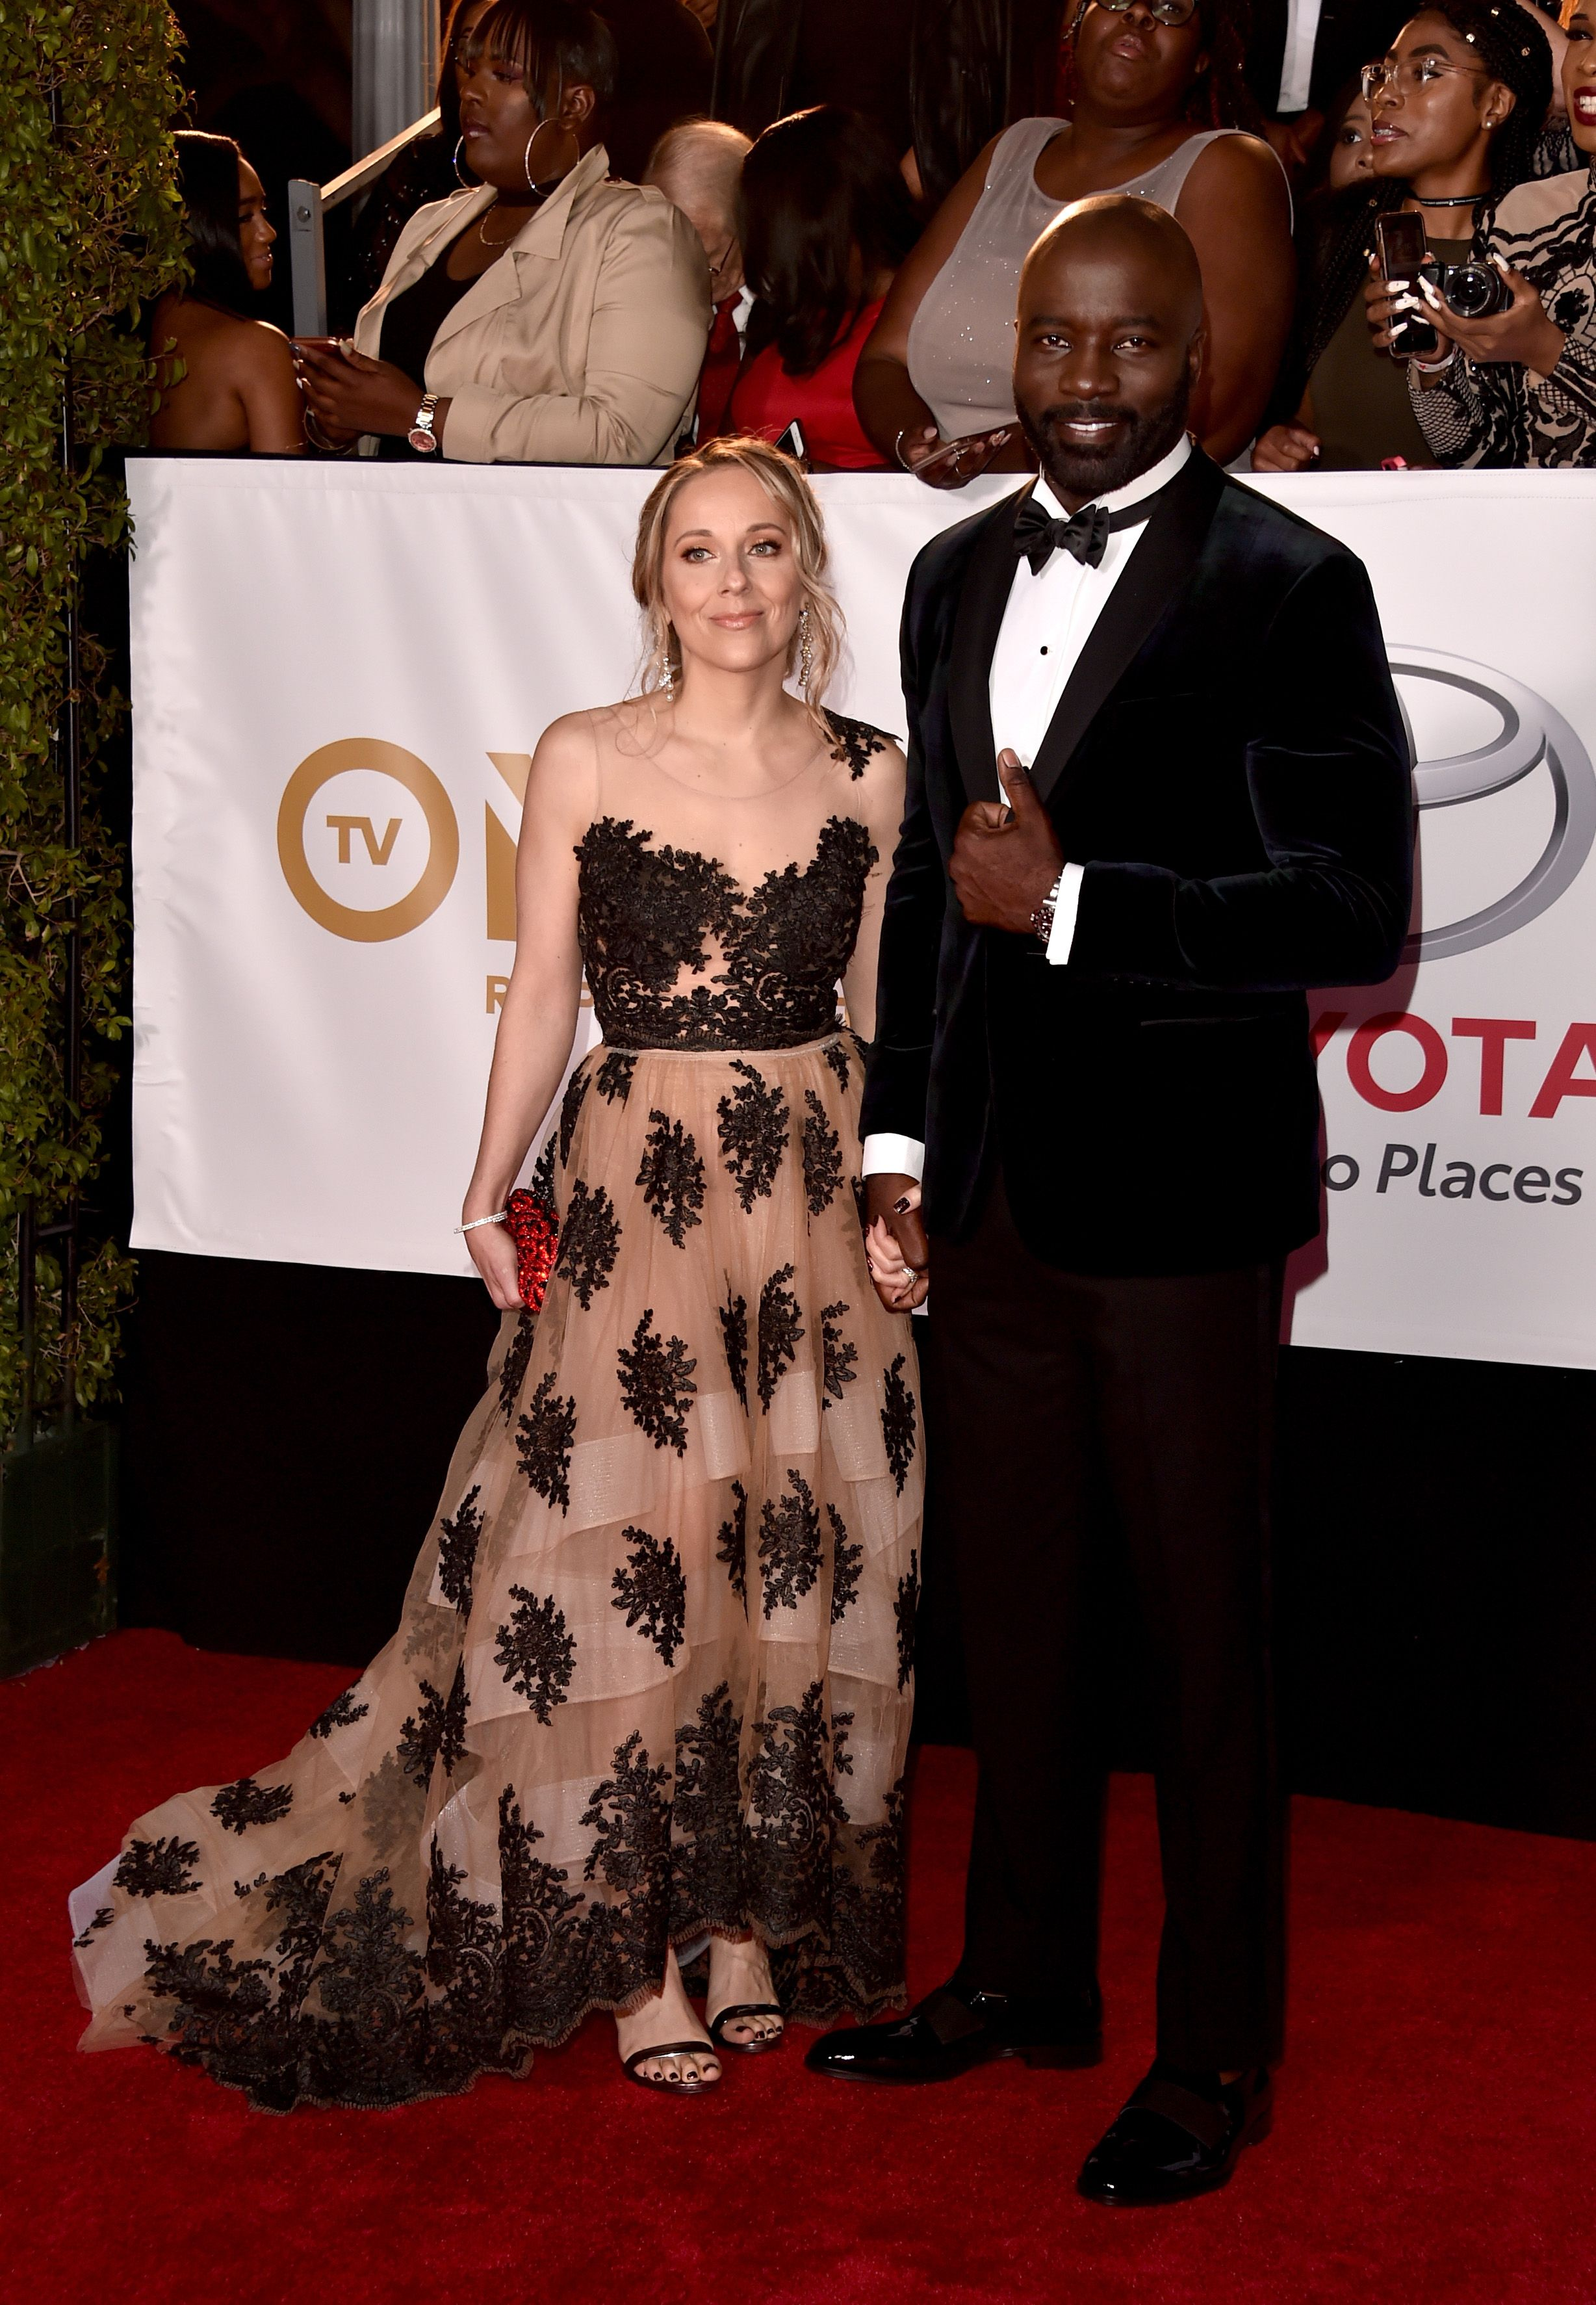 Iva and Mike Colter at the 49th NAACP Image Awards on January 15, 2018, in Pasadena, California | Photo: Alberto E. Rodriguez/Getty Images